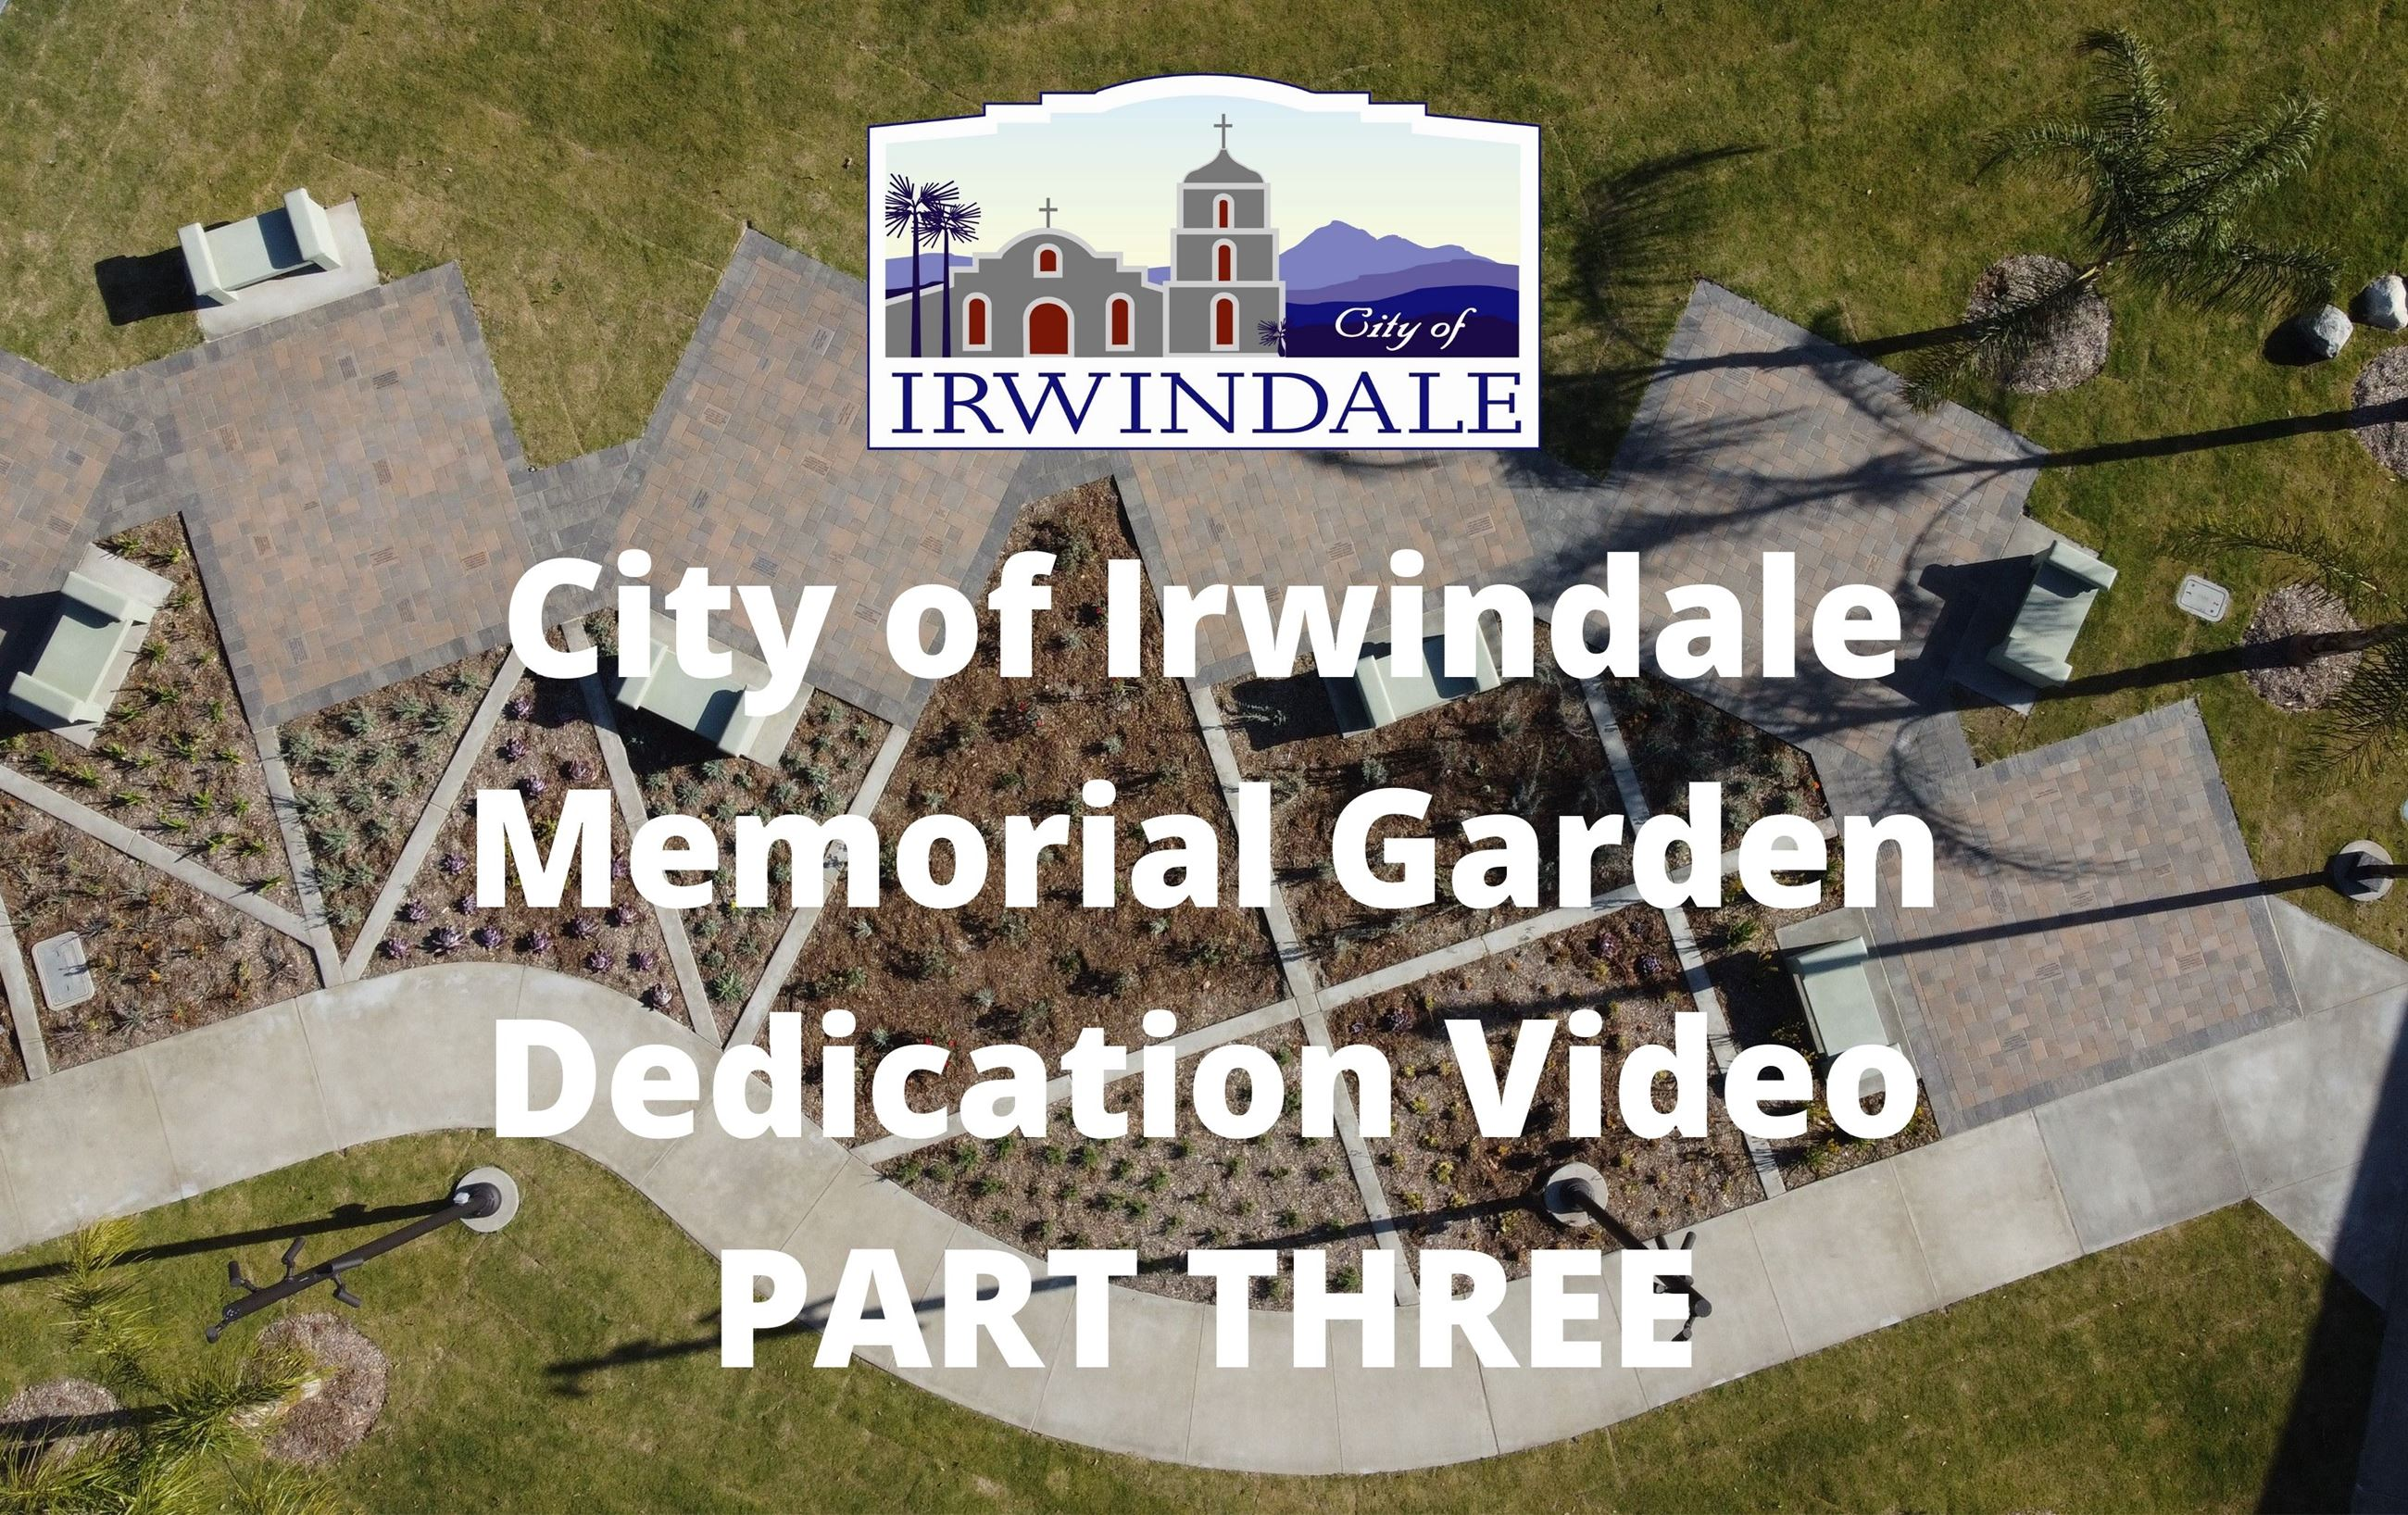 City of Irwindale Memorial Garden Dedication Video Part Three